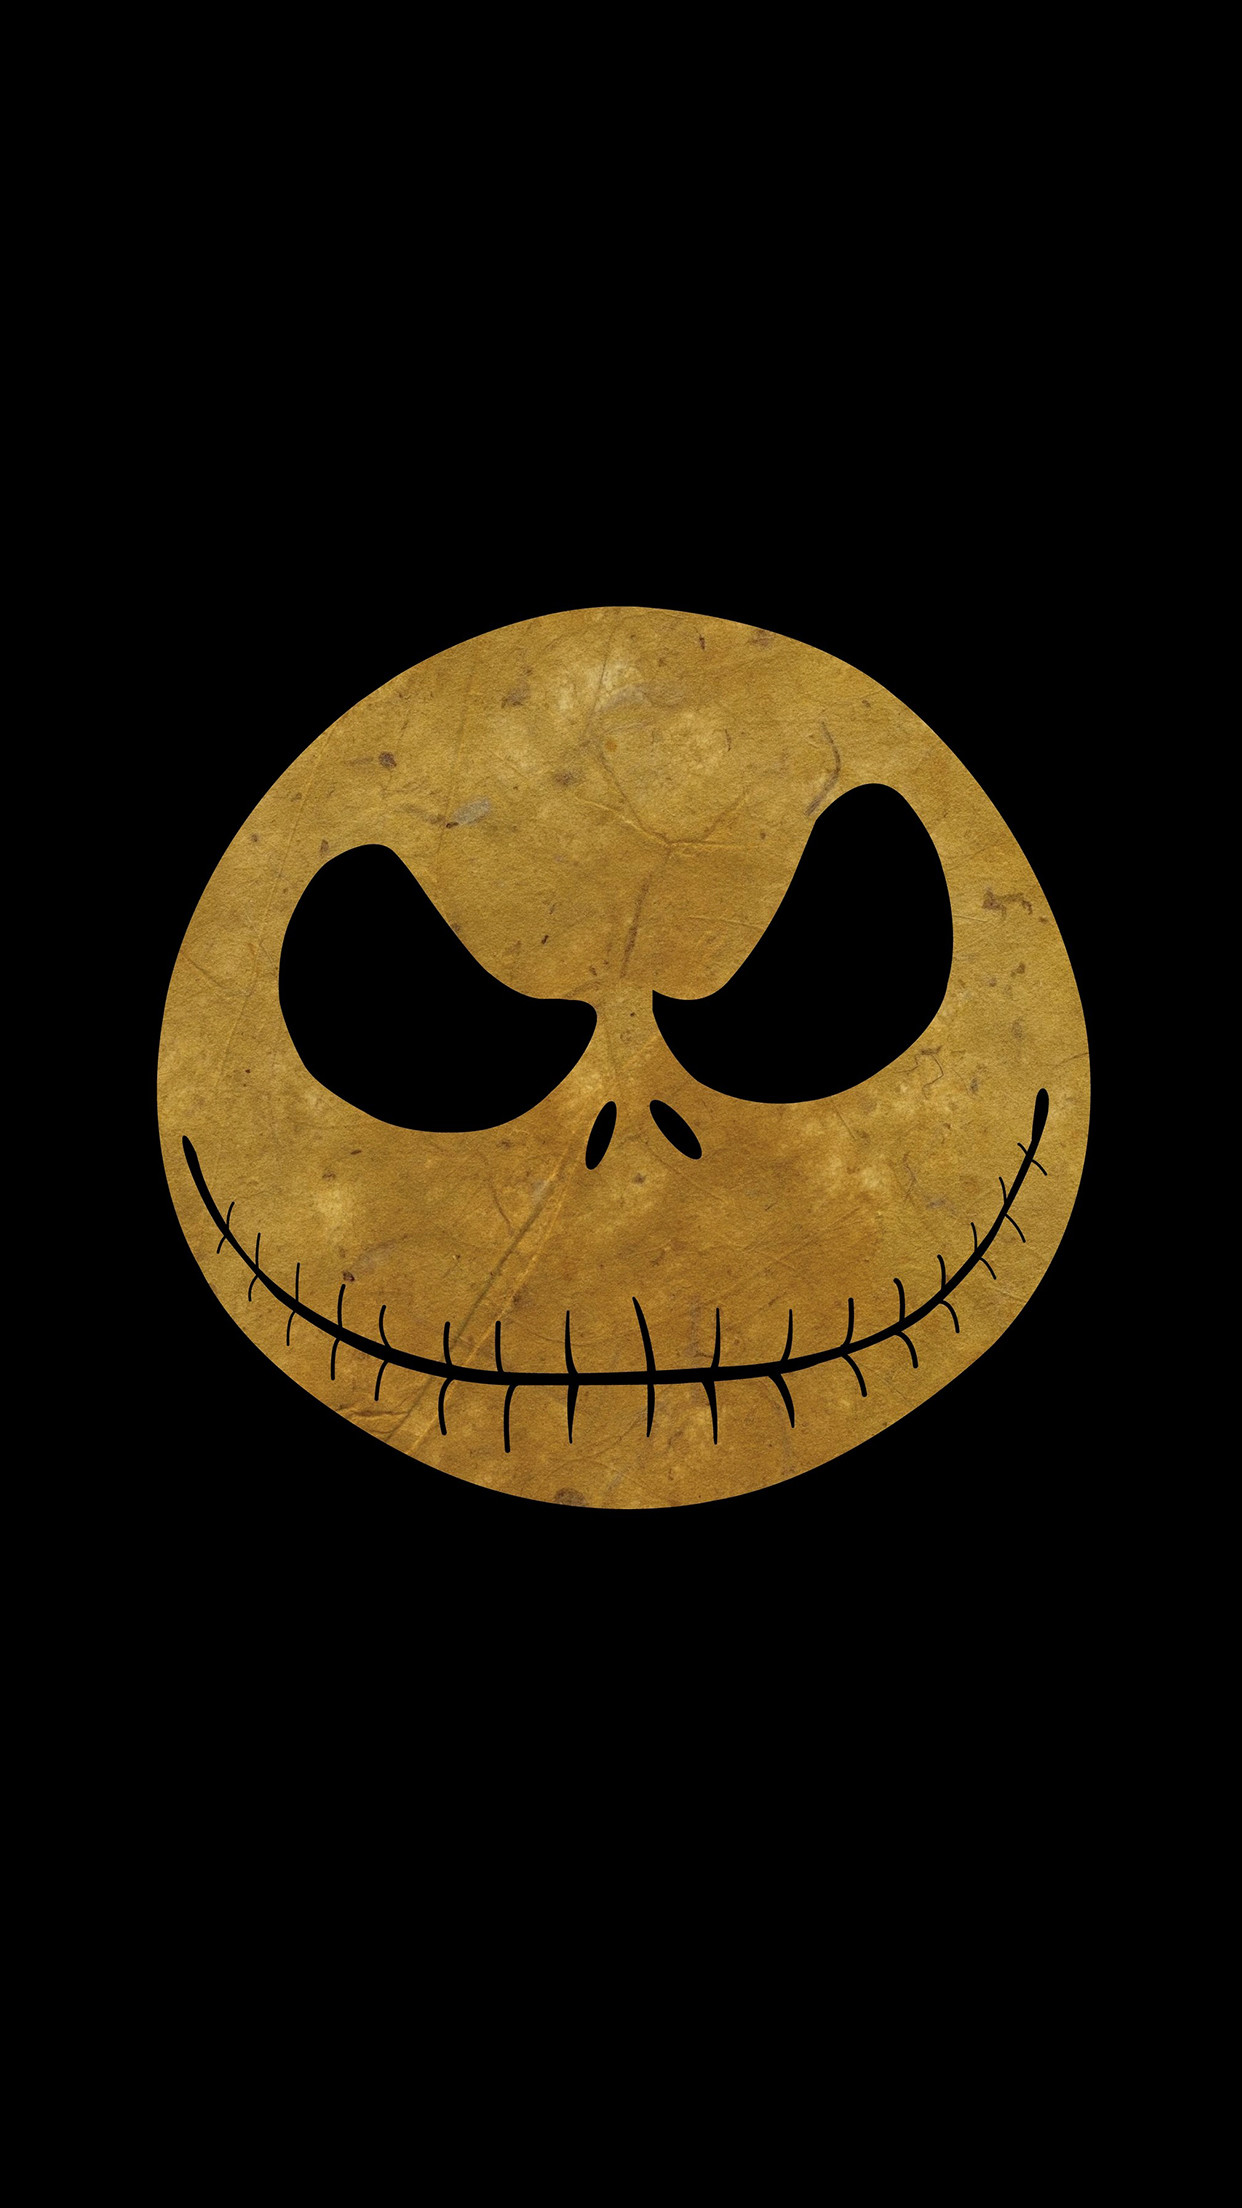 Wallpapers for all iPhone Retina » The Nightmare Before Christmas .